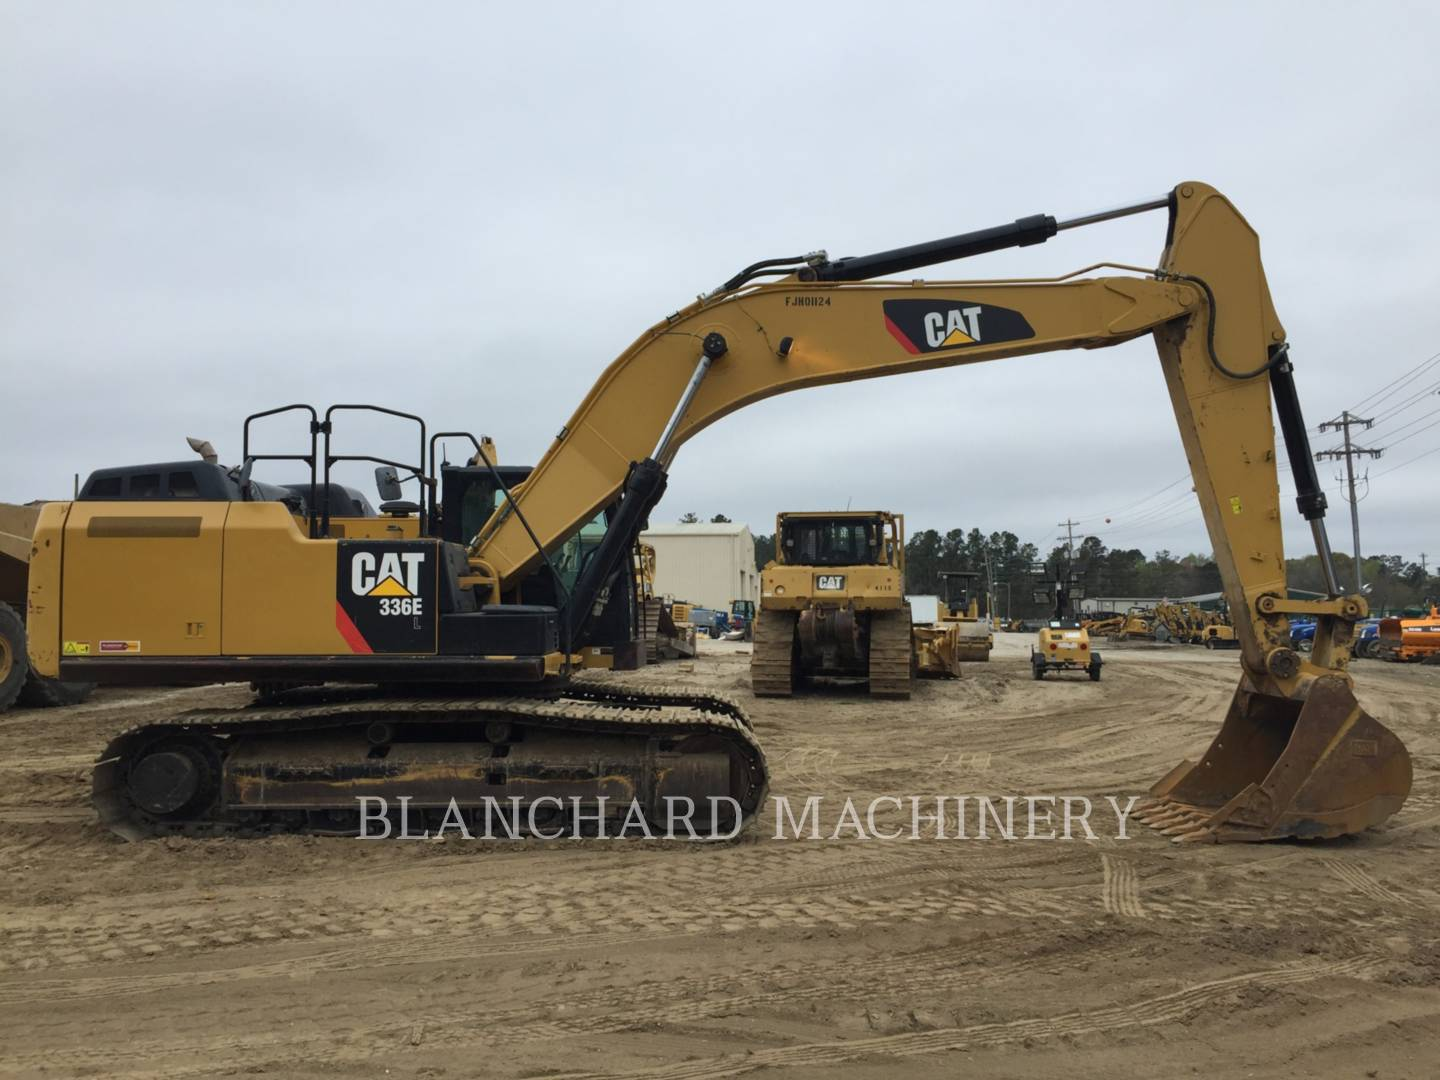 All About Cat Equipment For Sale Caterpillars Used Komatsu Fg Forklift Wiring Diagram 30011 2014 Caterpillar 336el 11839551 From Blanchard